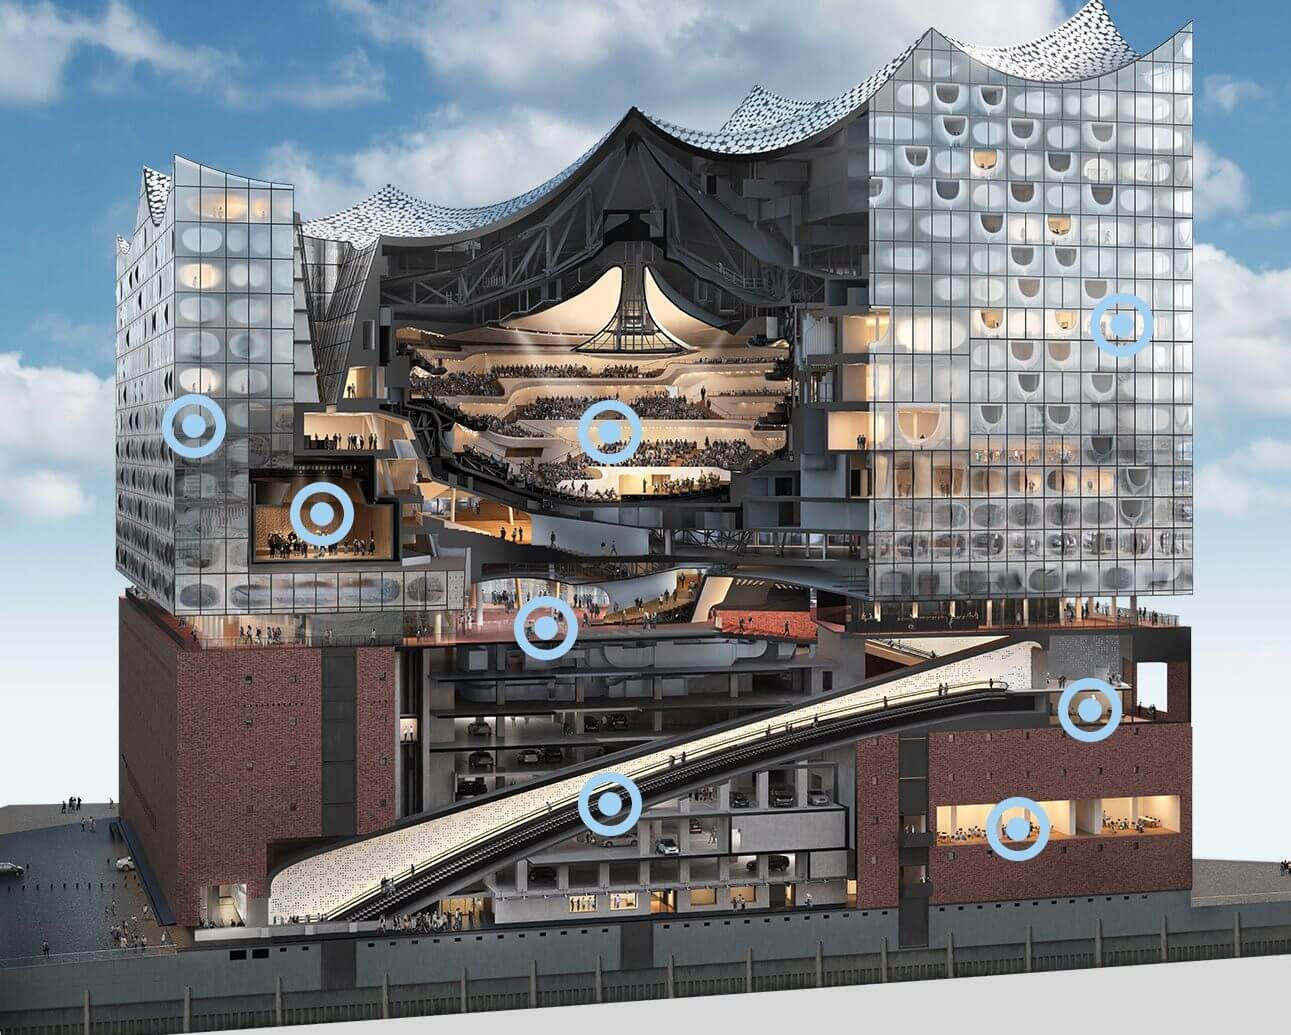 Elbphilharmonie cut-away